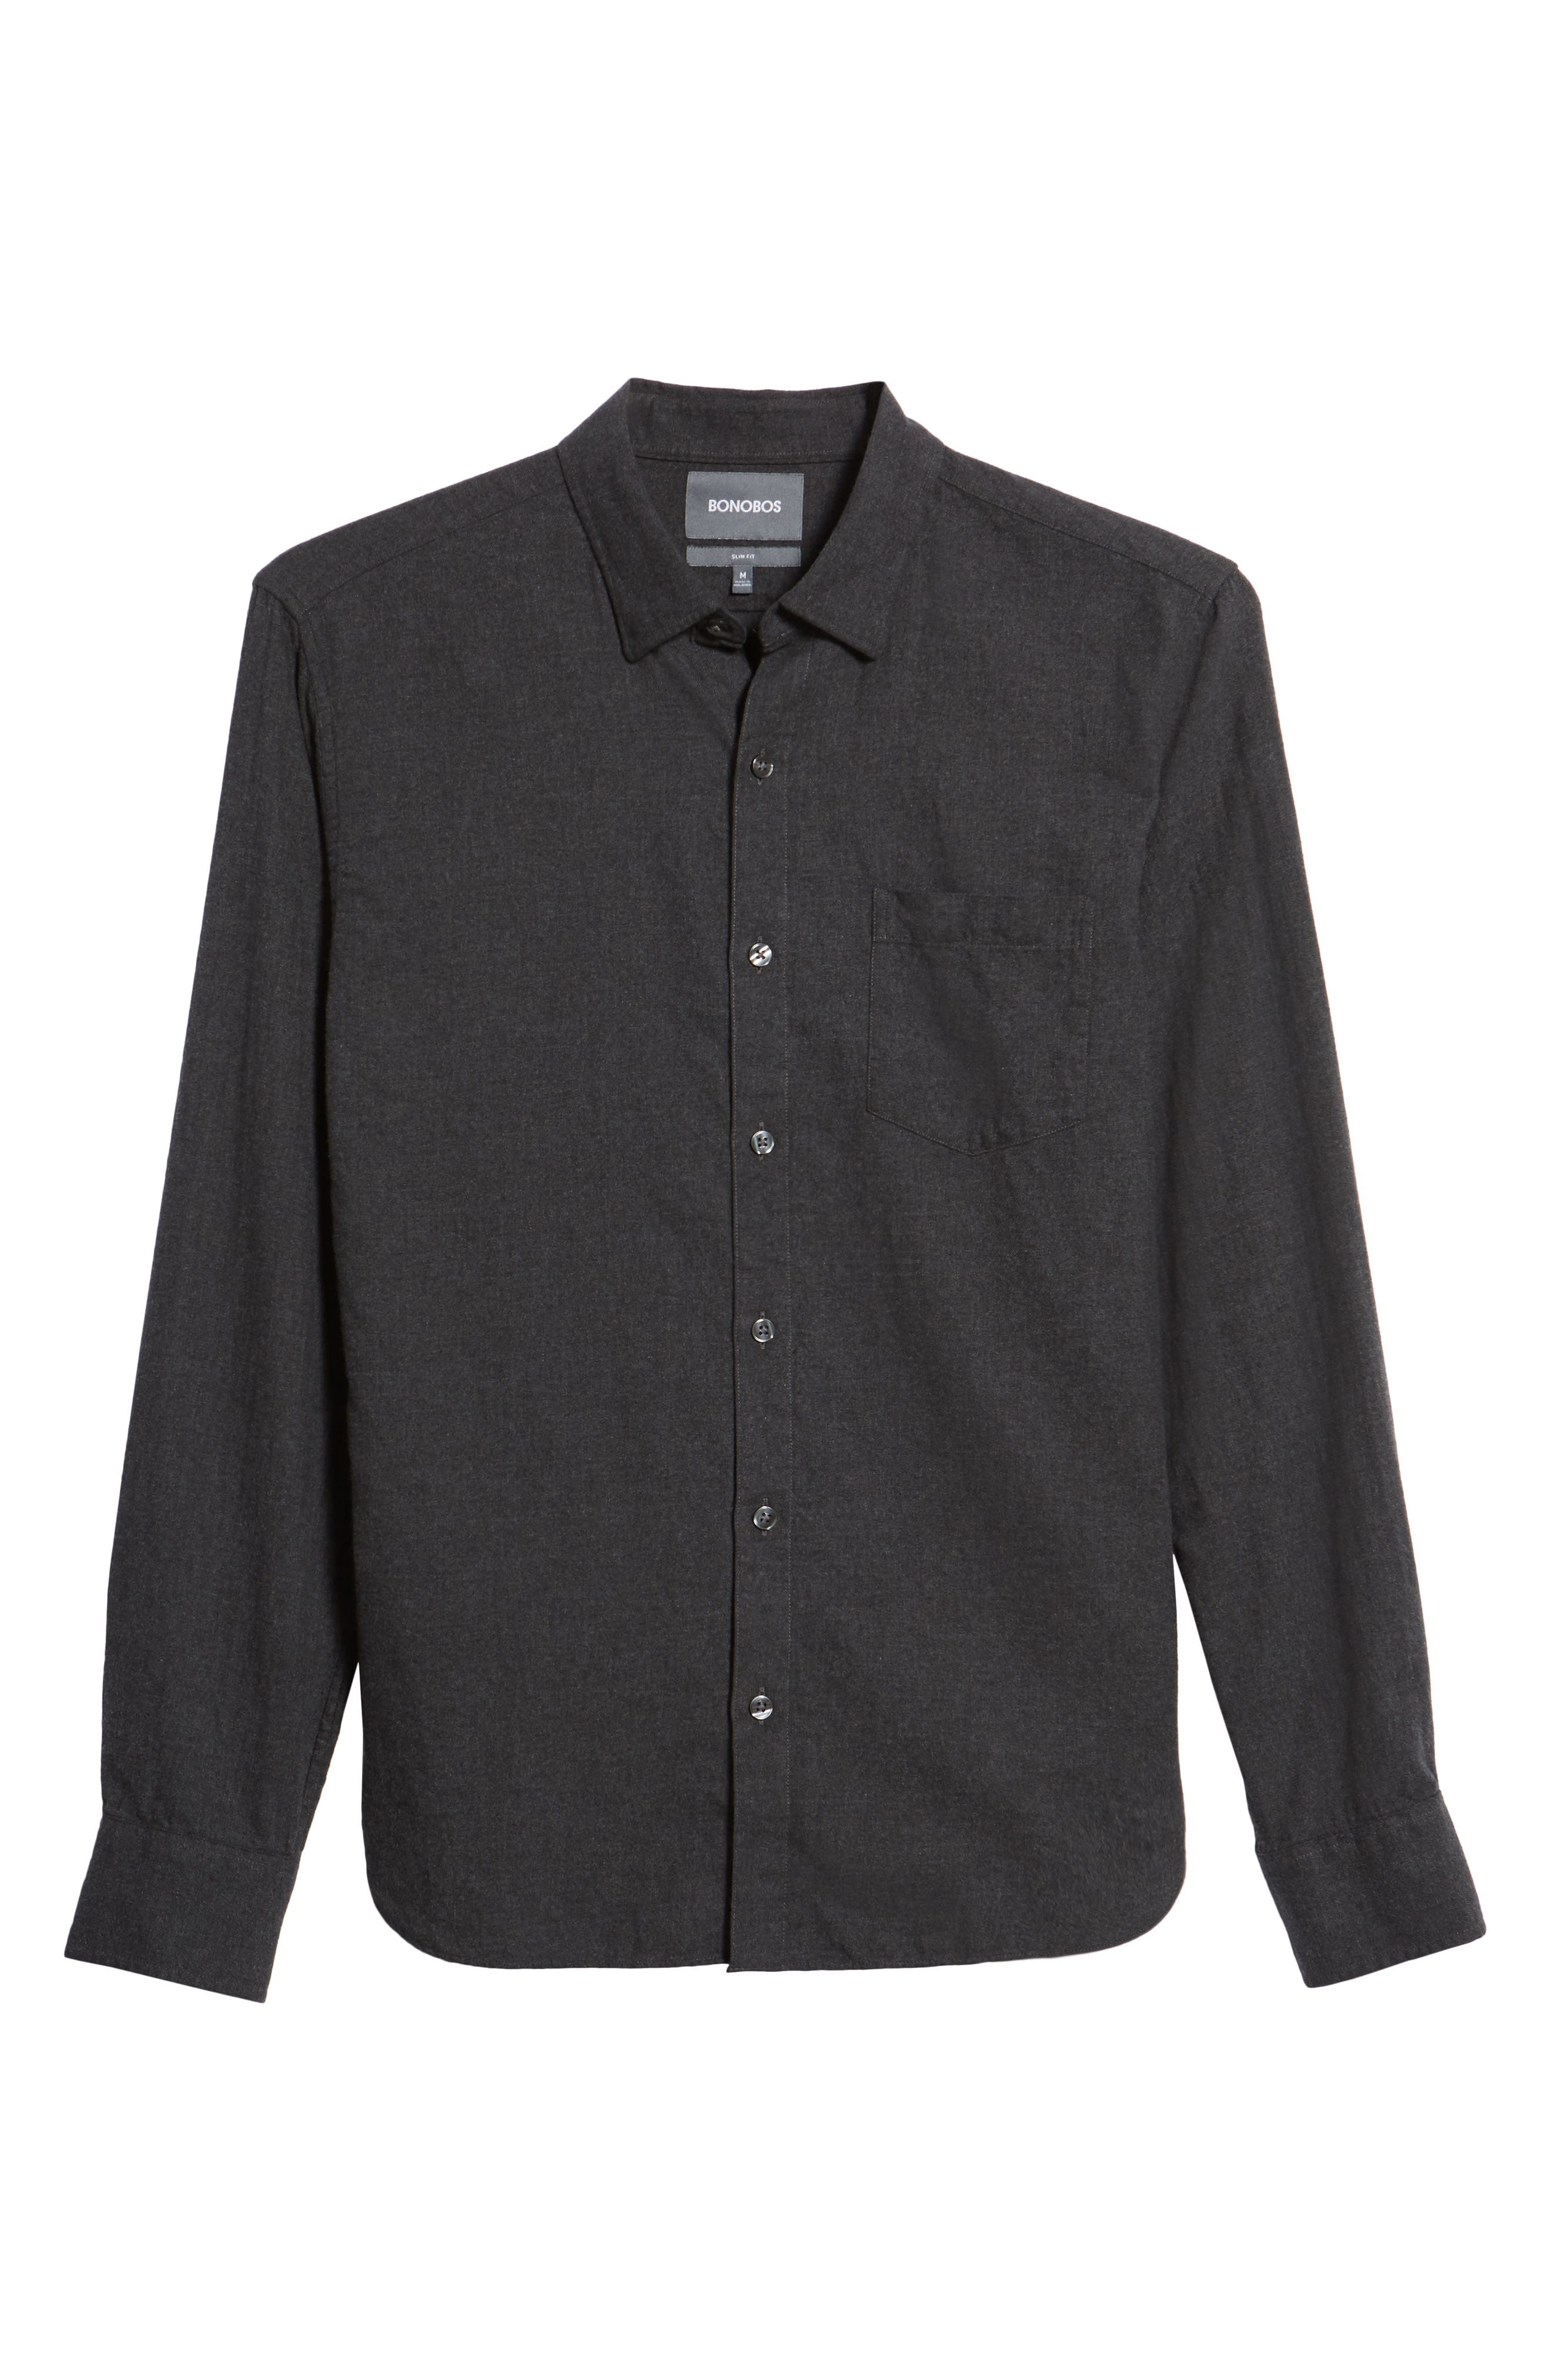 Slim Fit Brushed Twill Sport Shirt,                             Alternate thumbnail 6, color,                             Heather Charcoal